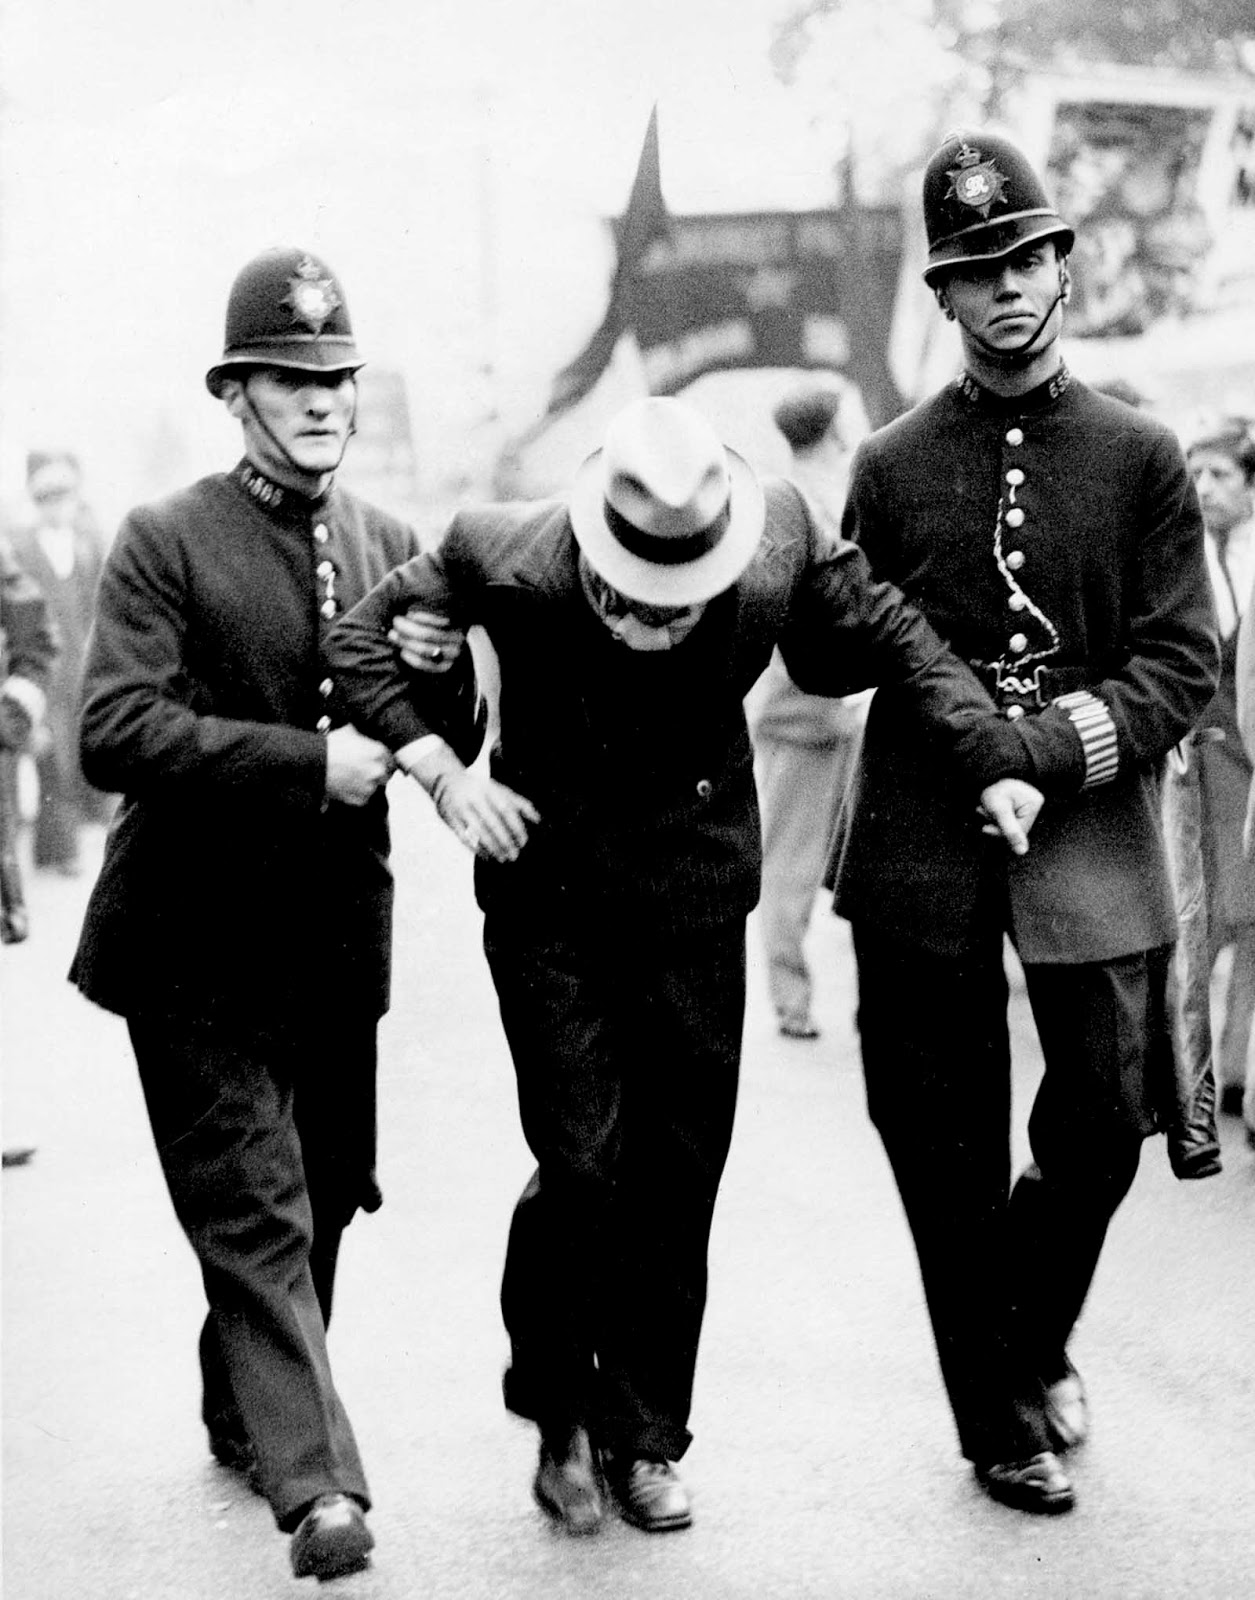 A participant at the 'Communists' March' from Tower Hill to Victoria Park in London, is marched away by police after being arrested. 1936.